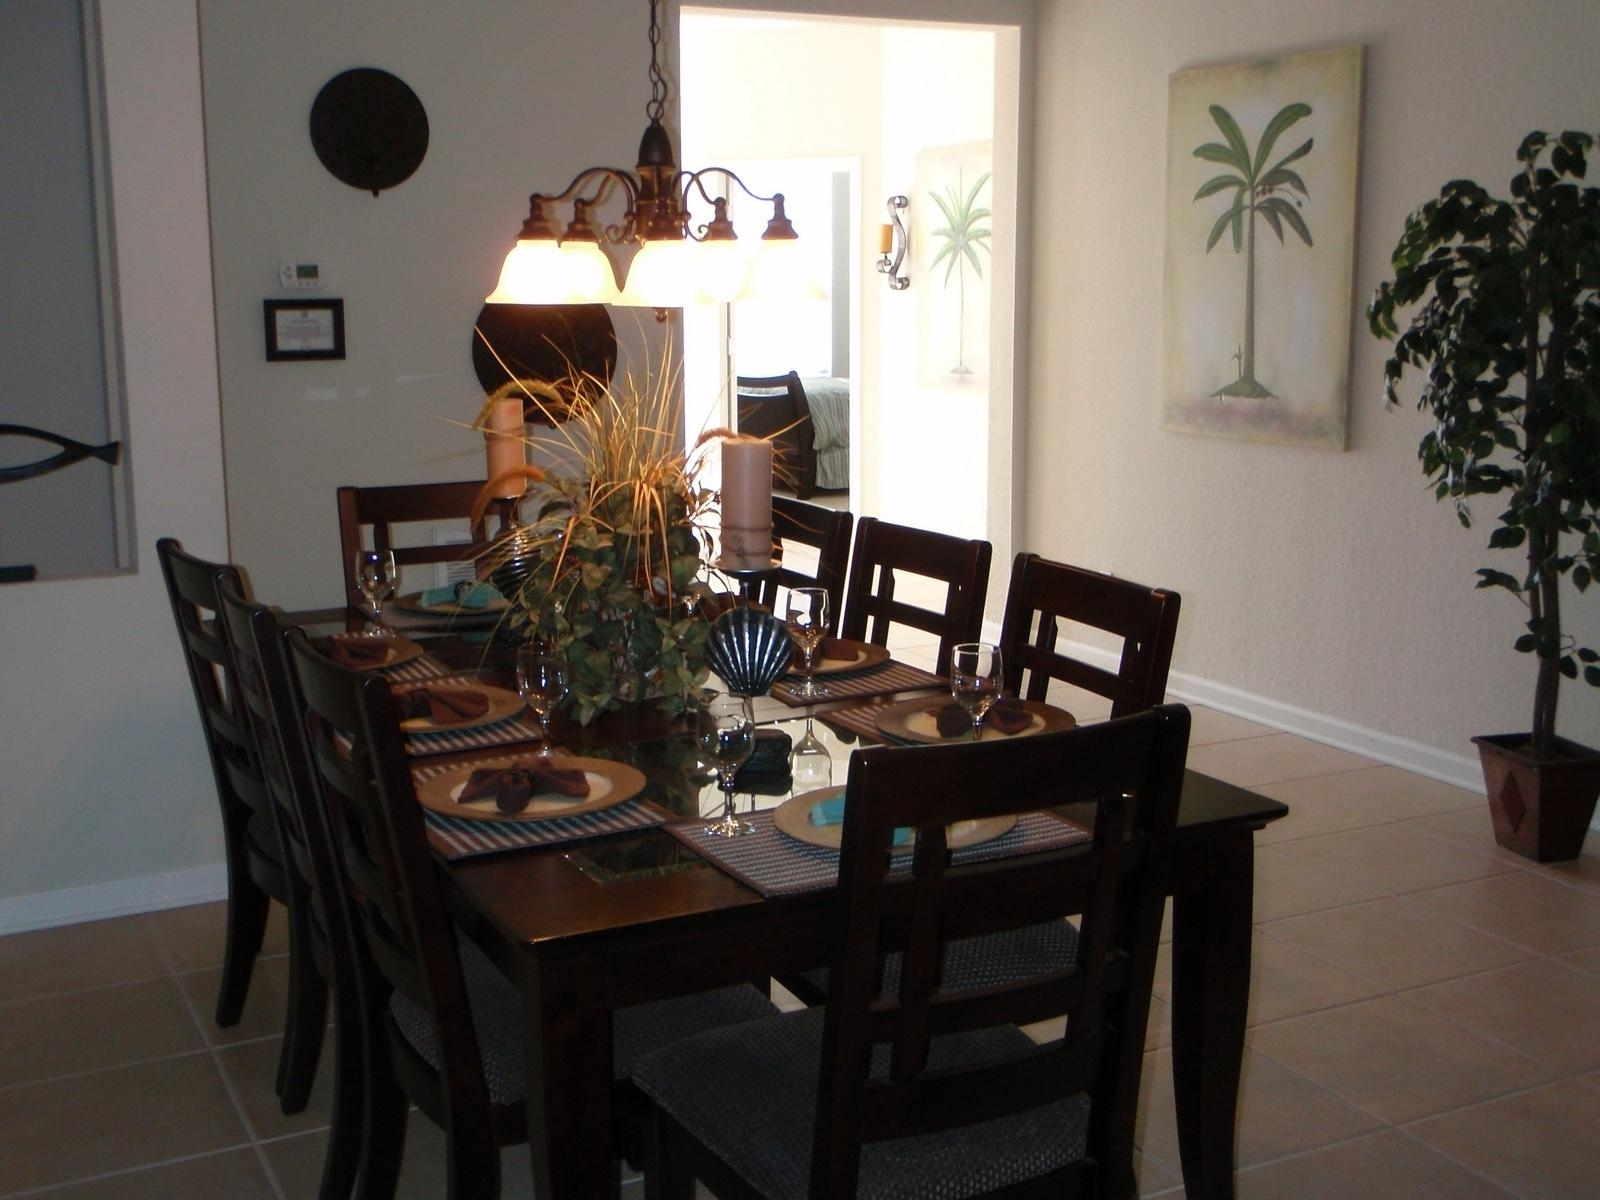 Popular 8 Seater Dining Table With Rough Tile Flooring And Chandelier Over Within 8 Seater White Dining Tables (View 12 of 25)